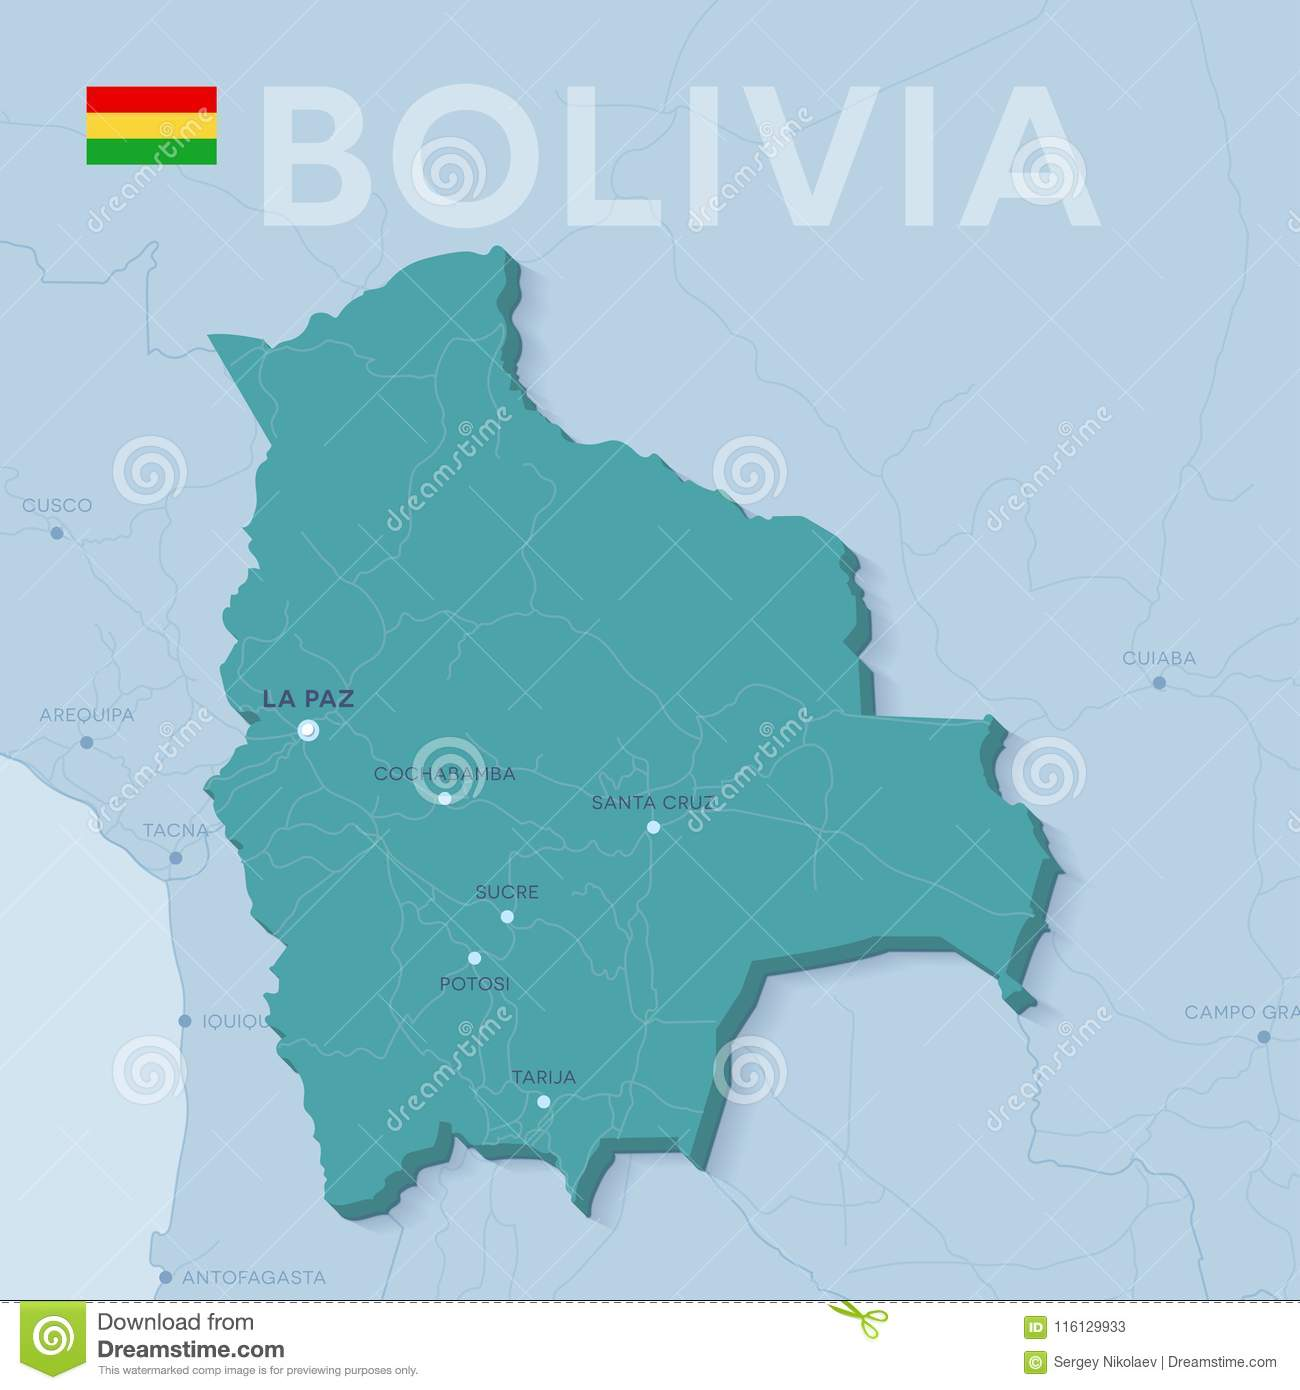 Verctor Map Of Cities And Roads In Bolivia  Stock Vector furthermore Bolivia maps • mappery as well Bolivia Map  Map of Bolivia additionally  furthermore Bolivia Map with Cities   Free Pictures of Country Maps besides Bolivia   Wikipedia as well Large political and administrative map of Bolivia with roads  major further Large detailed map of Bolivia further Bolivia Archives   Maps for Design together with  together with Outline Map Of Bolivia South America – drawinglessons info moreover Poverty  inequality and development of indigenous peoples in additionally History of Peru  Ecuador and Bolivia  1837 CE likewise Map of Bolivia   Bolivia Cities Map likewise Bolivia Backng Guide   Must See Places  Maps  Highlights furthermore Large Physical Map Of Bolivia With Major Cities Bolivia South Within. on bolivia cities map